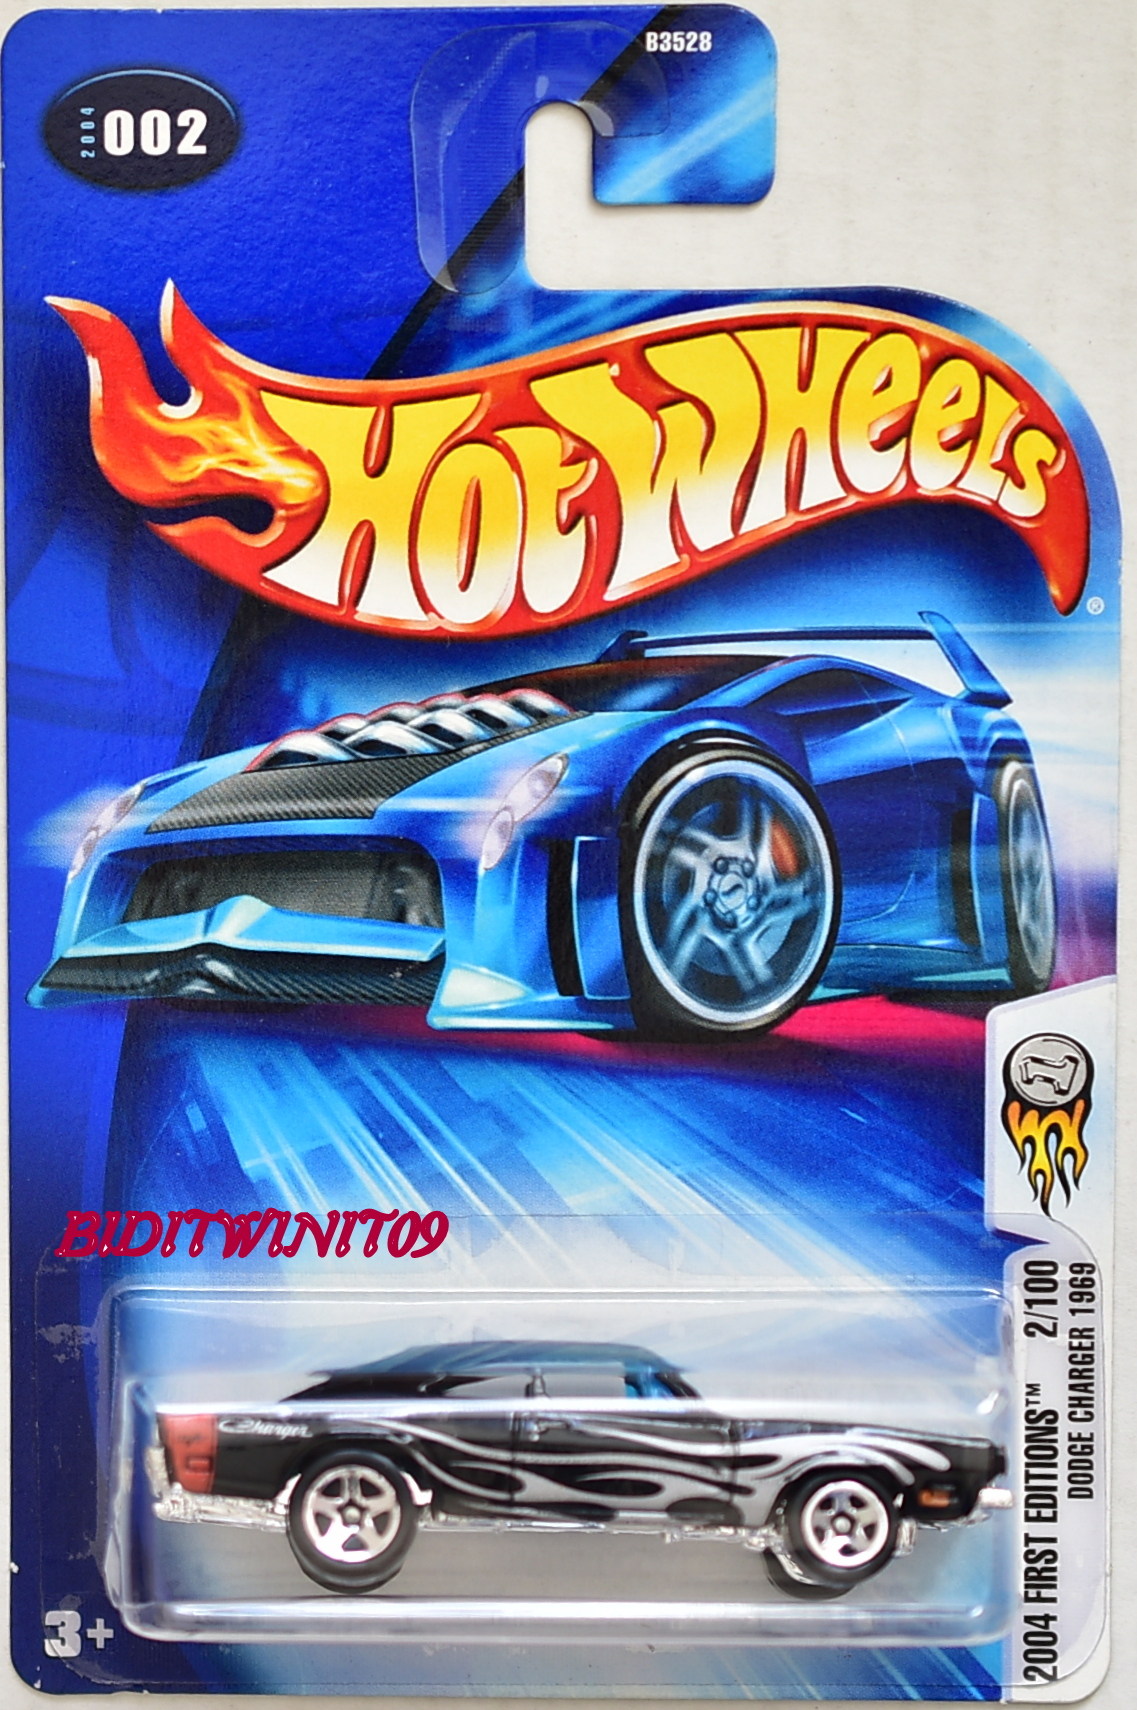 HOT WHEELS 2004 FIRST EDITIONS DODGE CHARGER 1969 #002